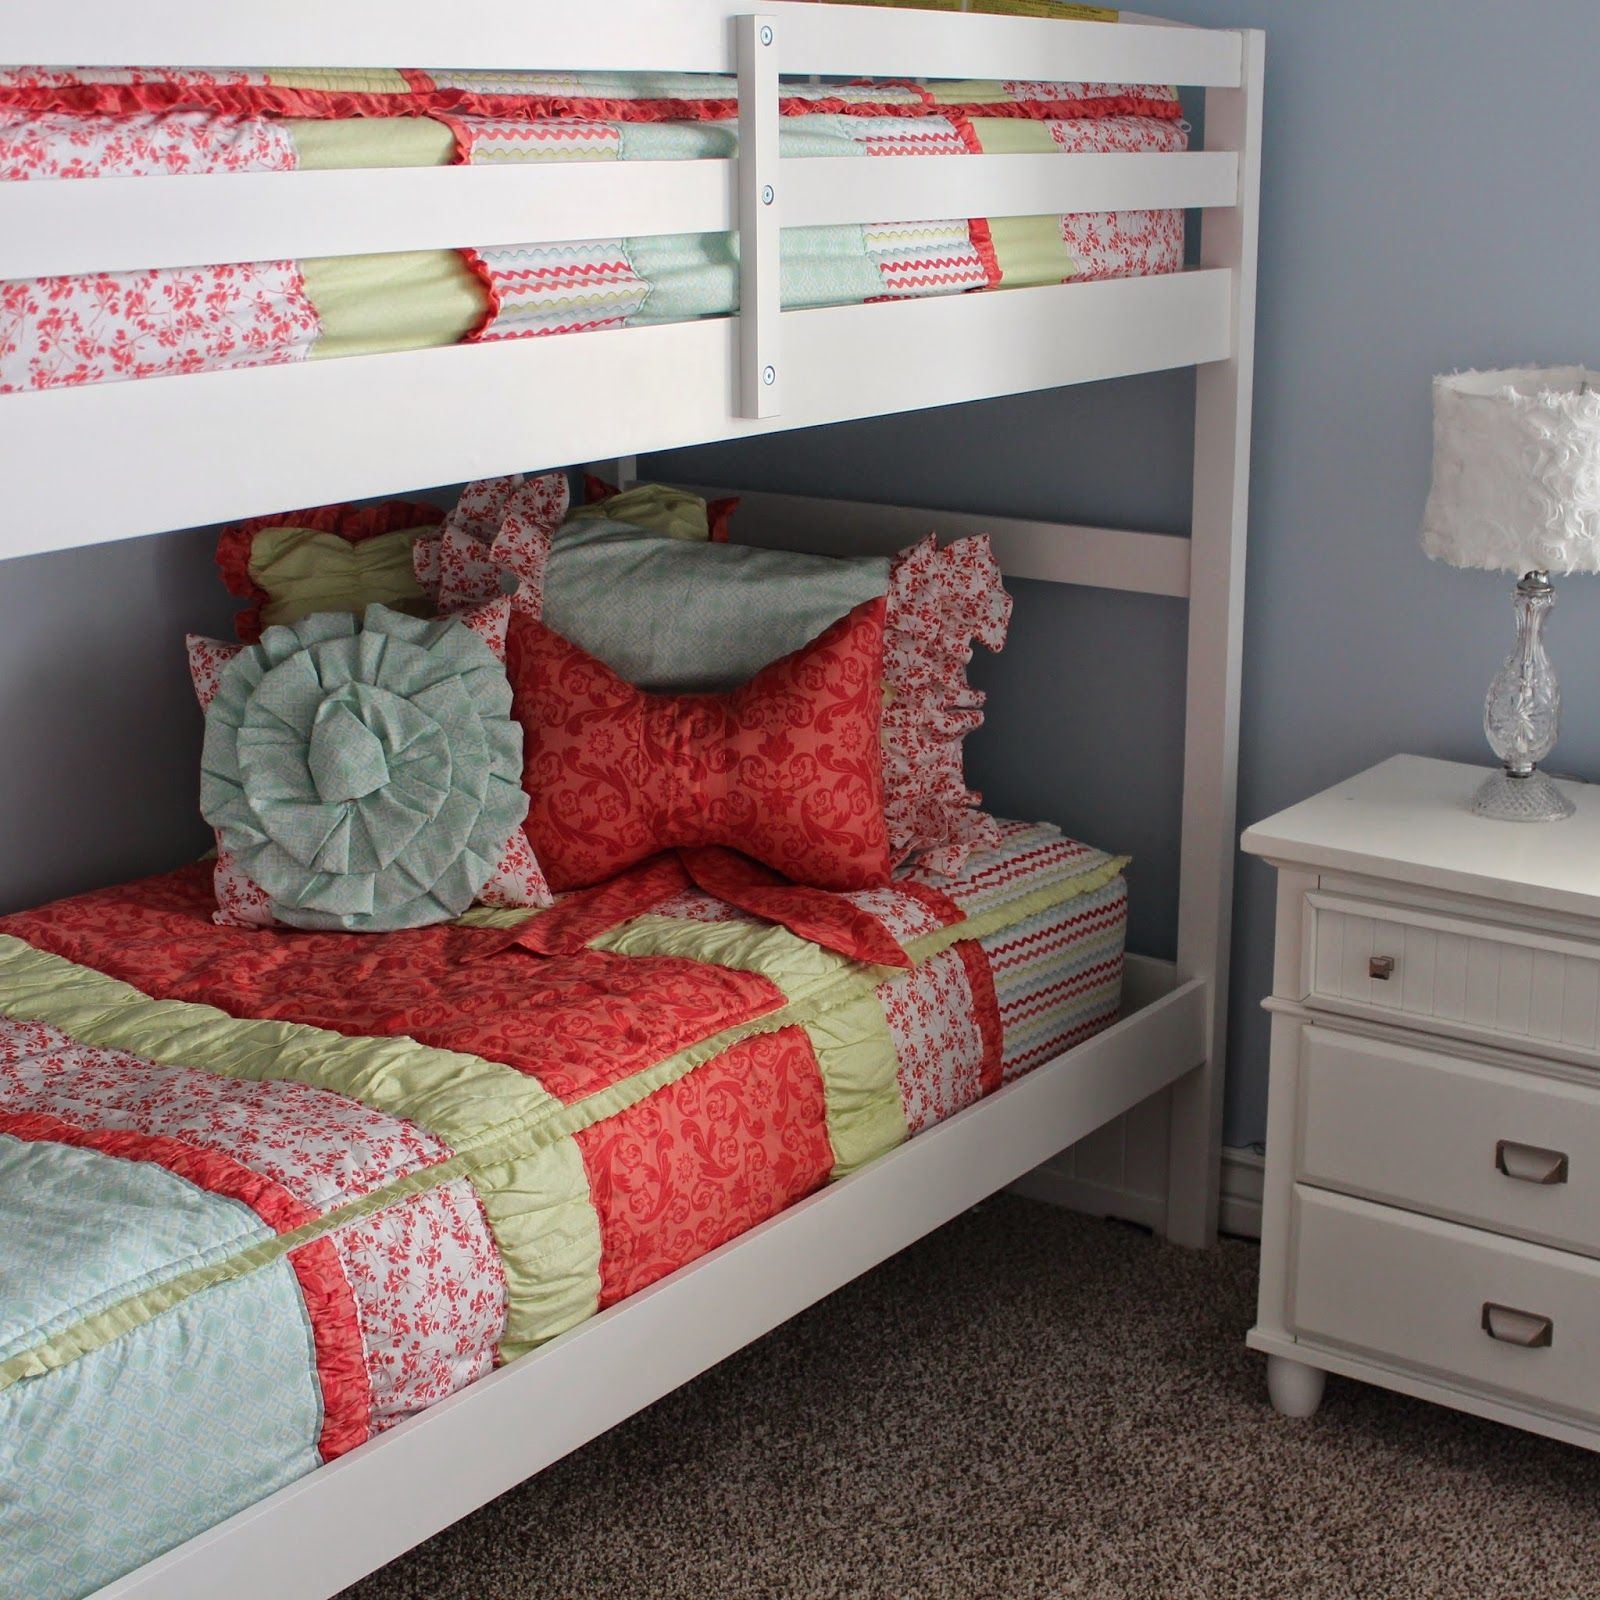 Beddy S Bed Ease Bunk Bed Bedding Modern Bunk Beds Bunk Beds Bunk Bed Sheets